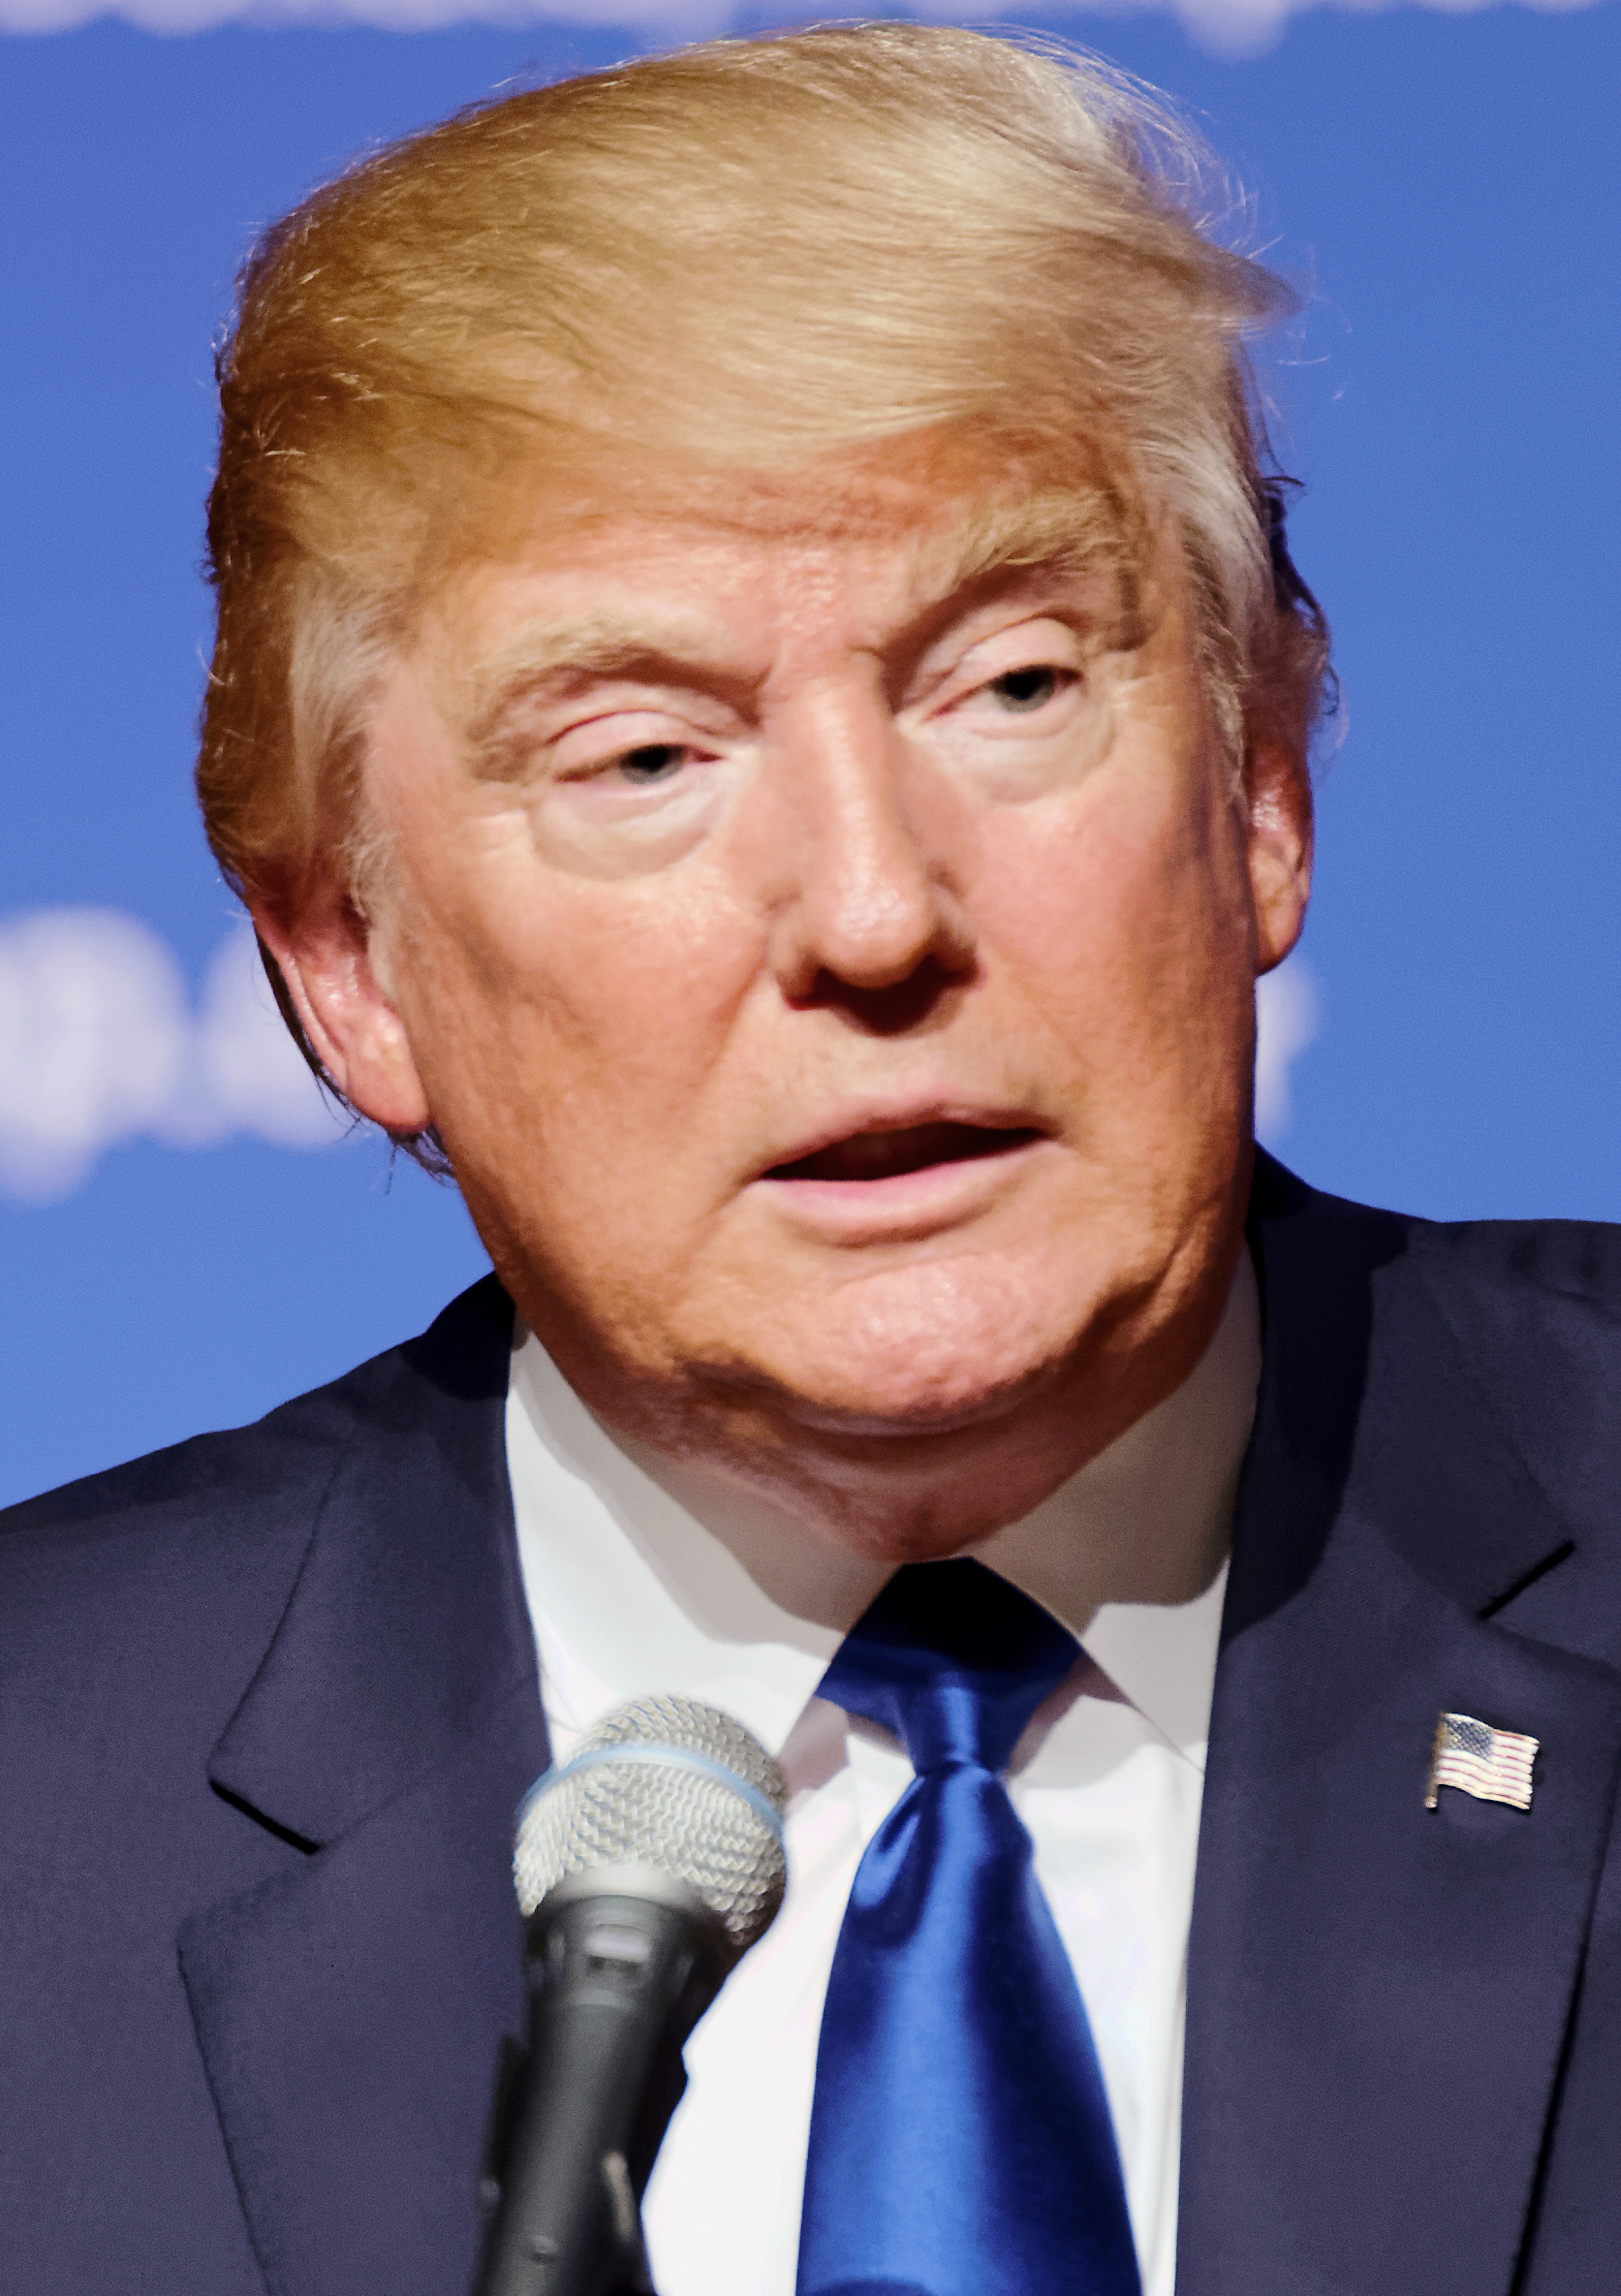 (Donald Trump in August, 2015. Source: Wikimedia, Creative Commons License) - Donald_Trump_August_2015